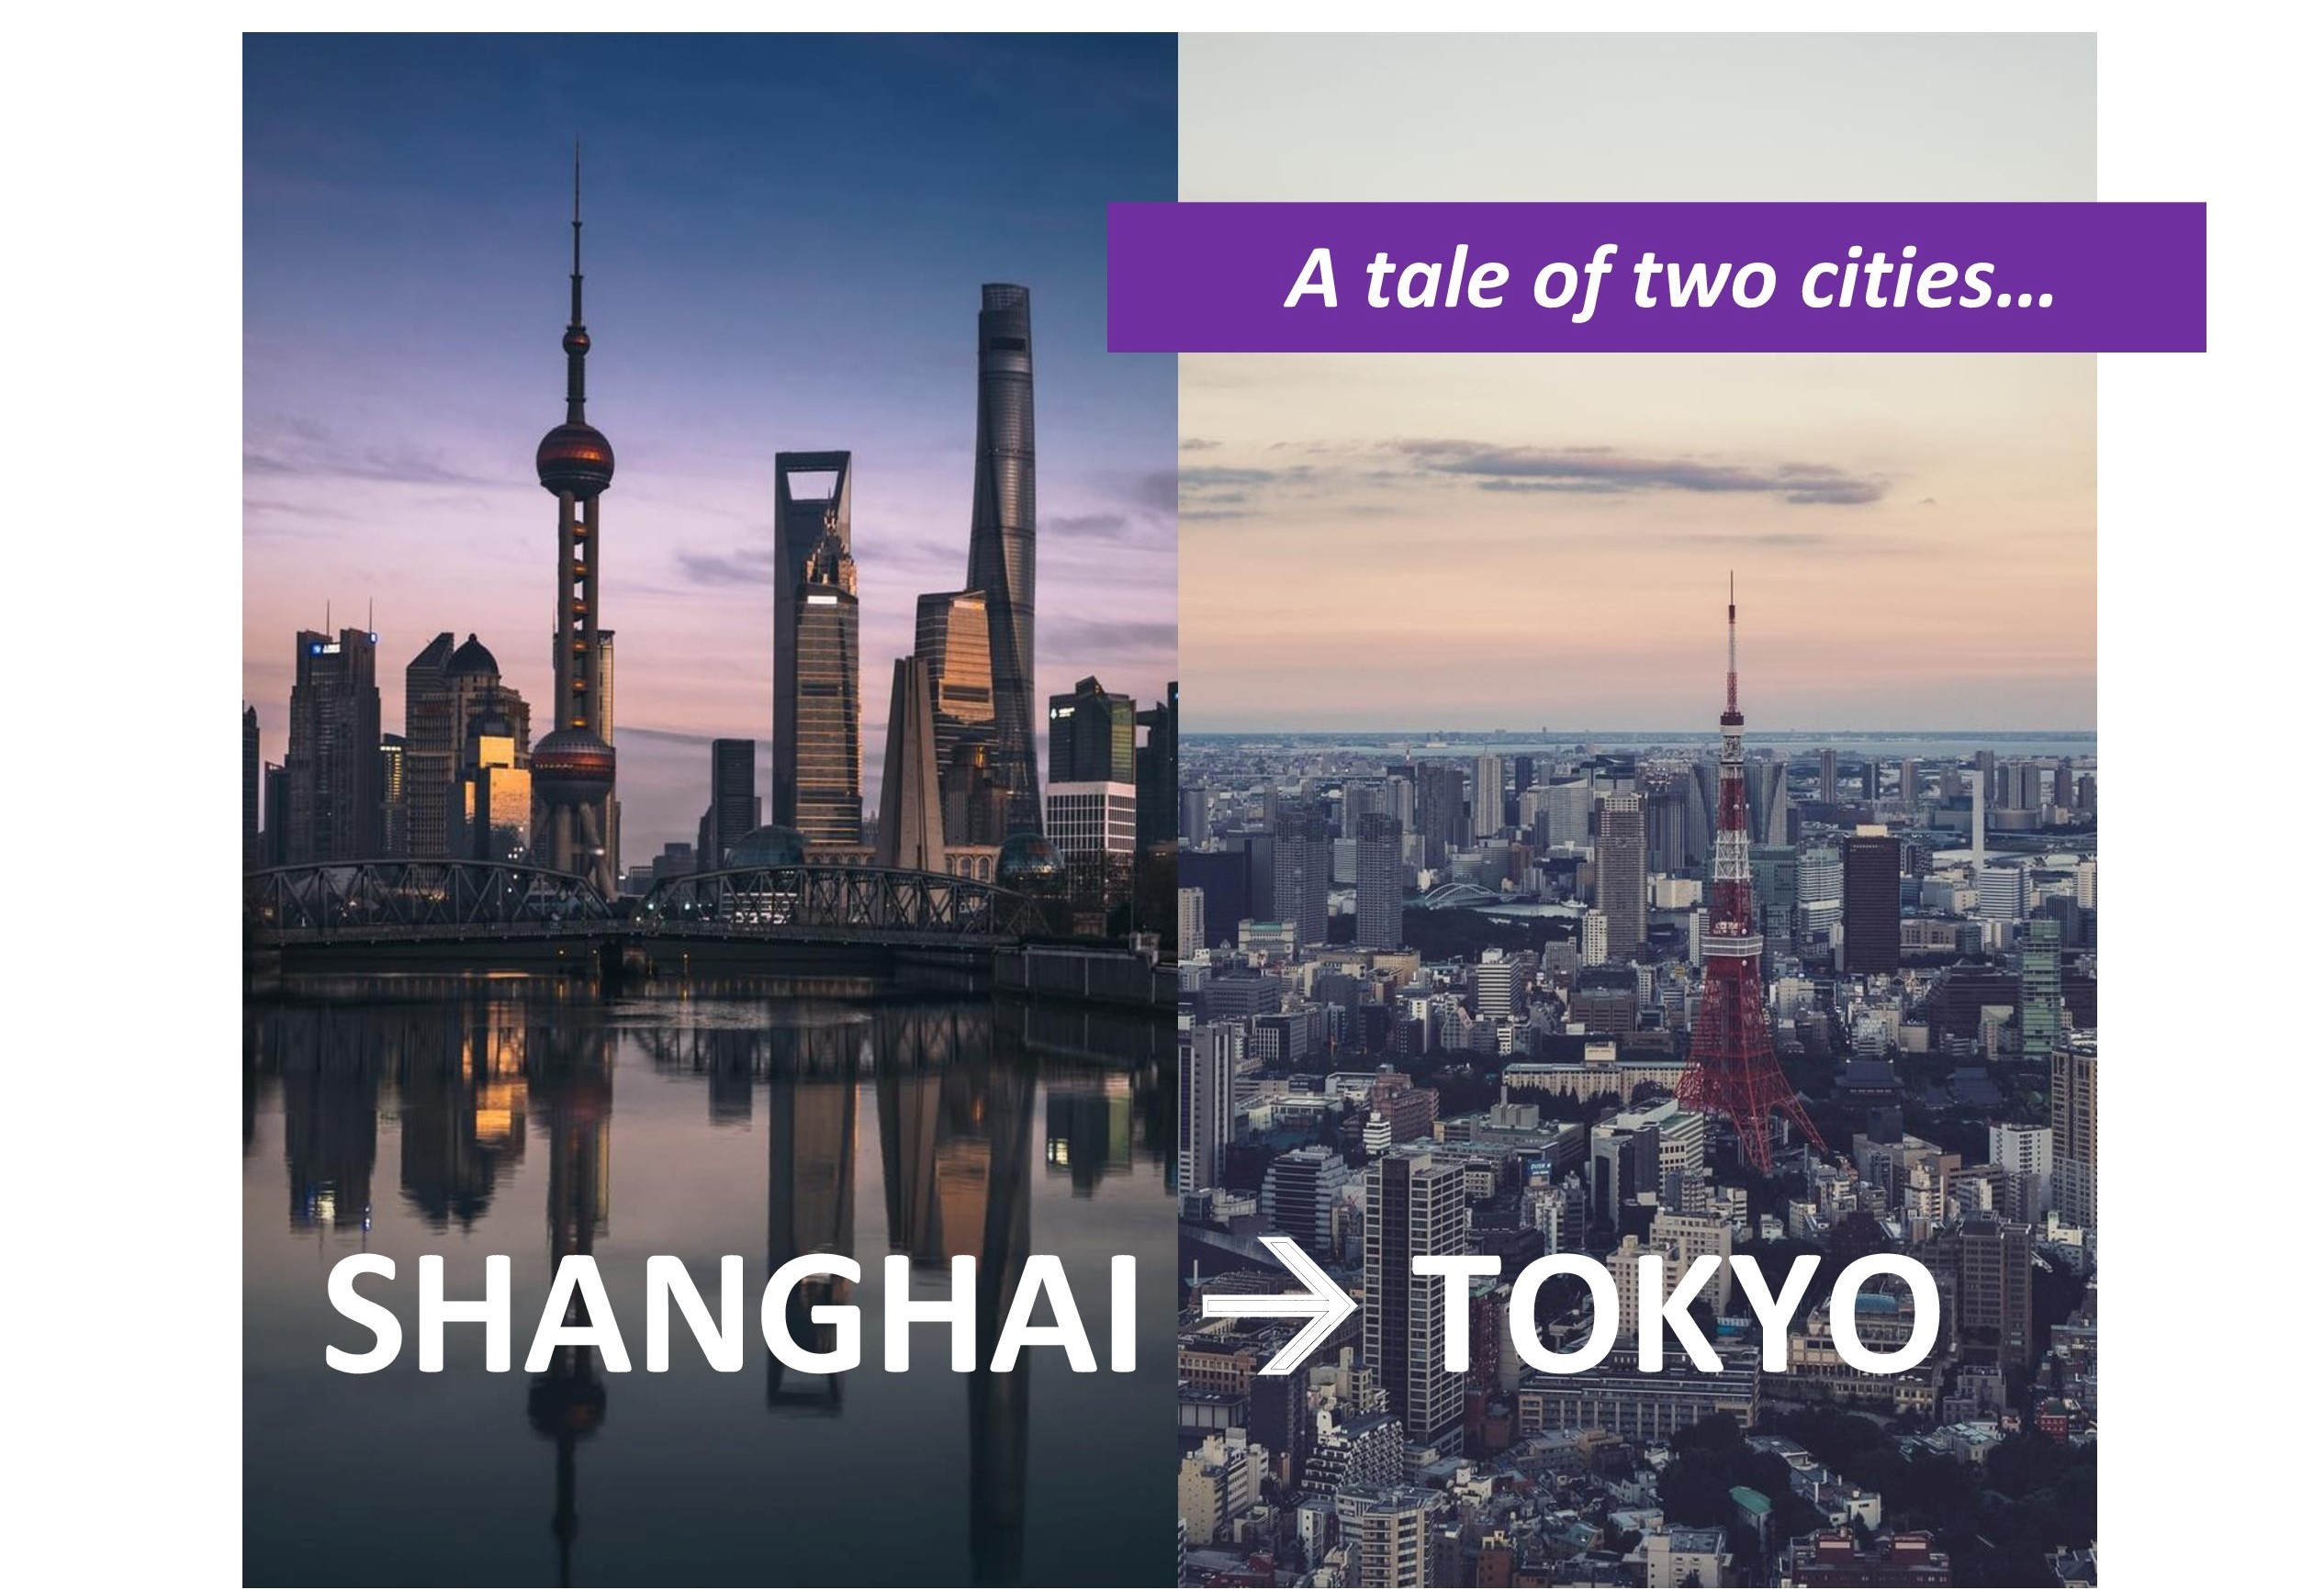 Observations by CEO Ali Mirza – A tale of two cities: Shanghai to Tokyo